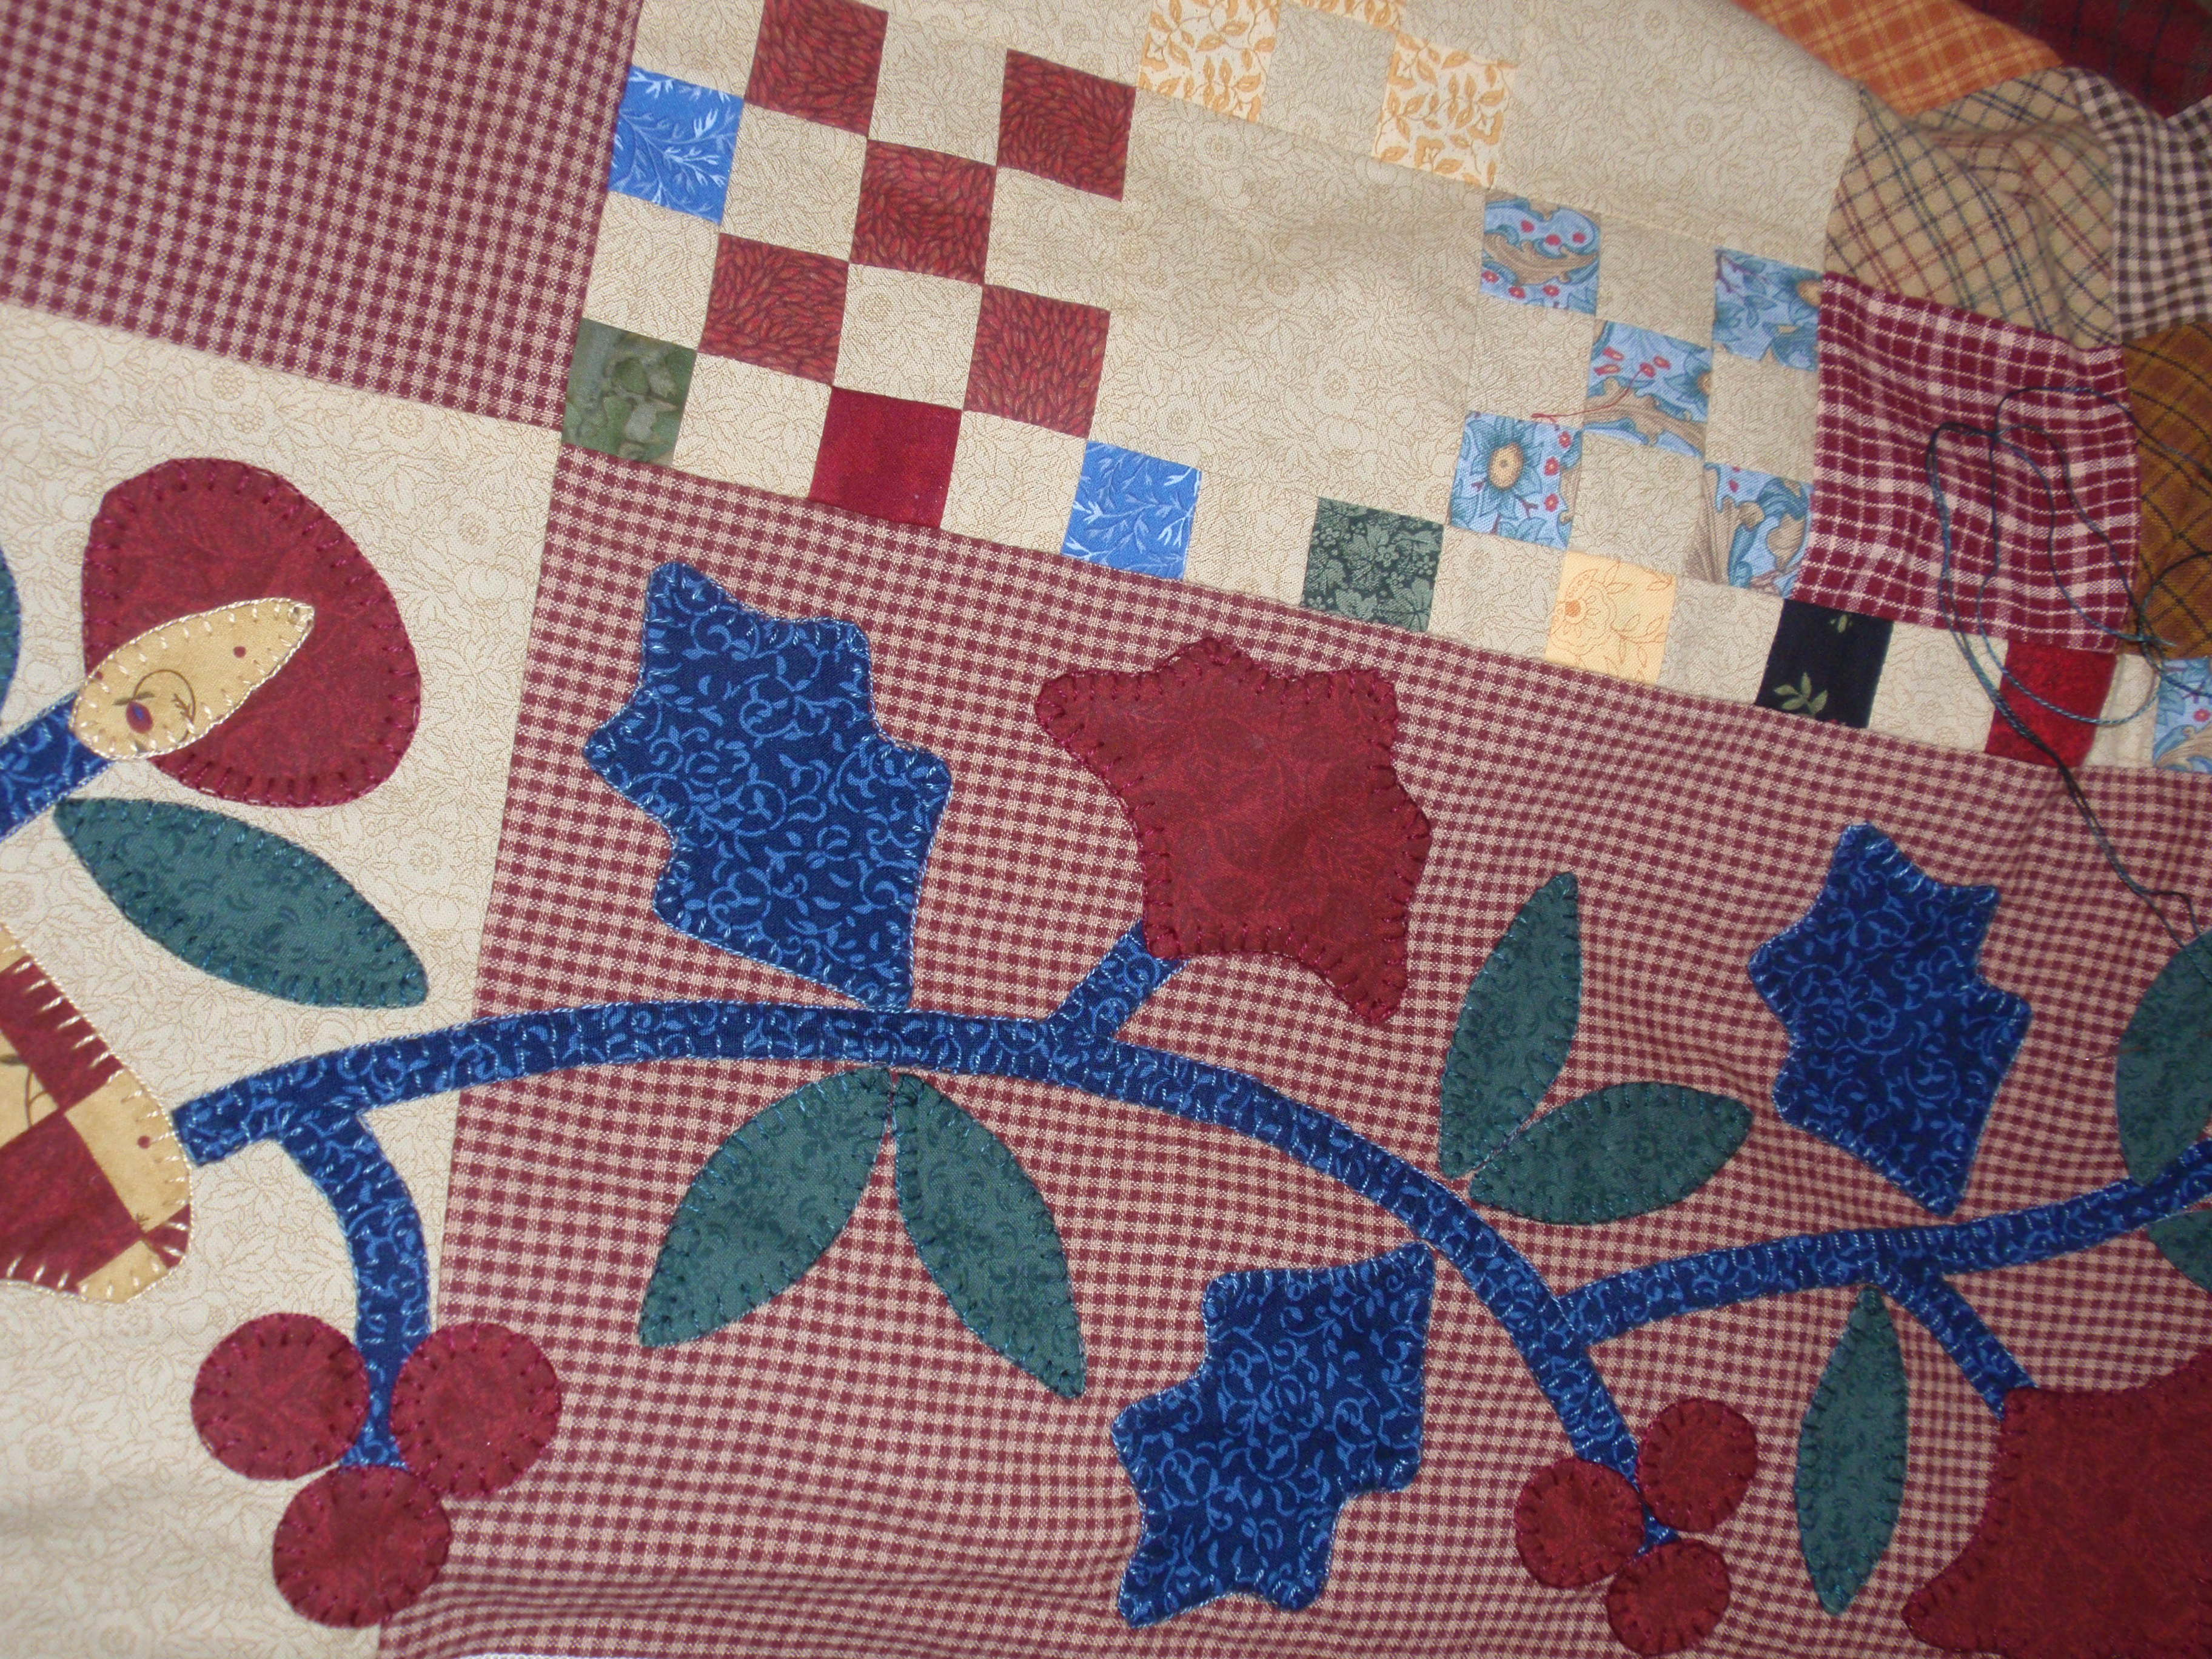 Applique filler quilting one piece at a time